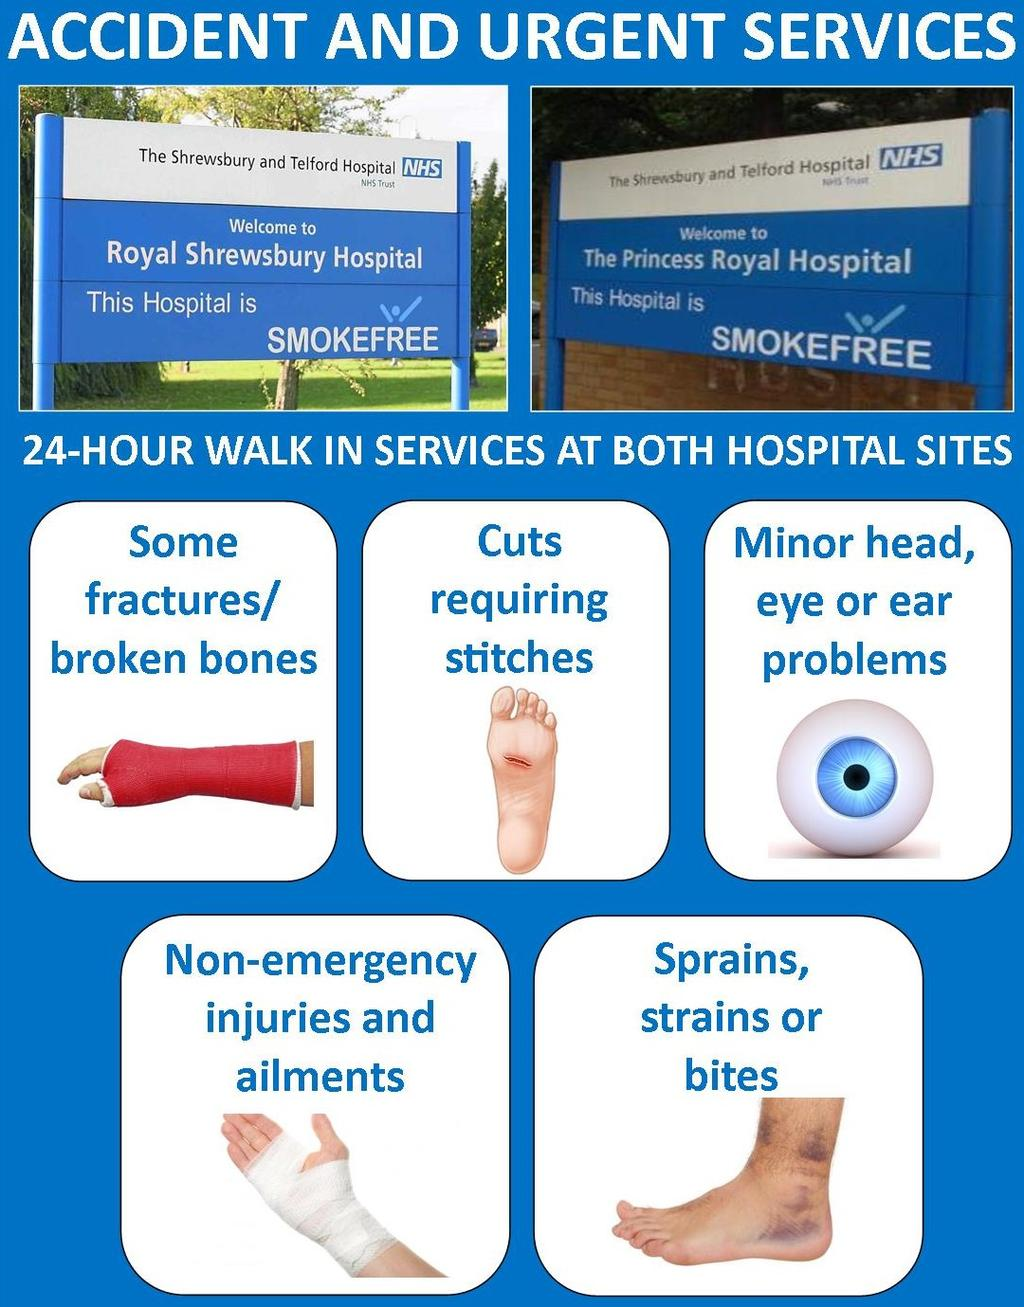 Care at your local hospital: Accident and Urgent Care Services New Accident and Urgent (A&U) Care Centres in Shropshire would be open 24-hours-a-day, sevendays-a-week and be available to treat the